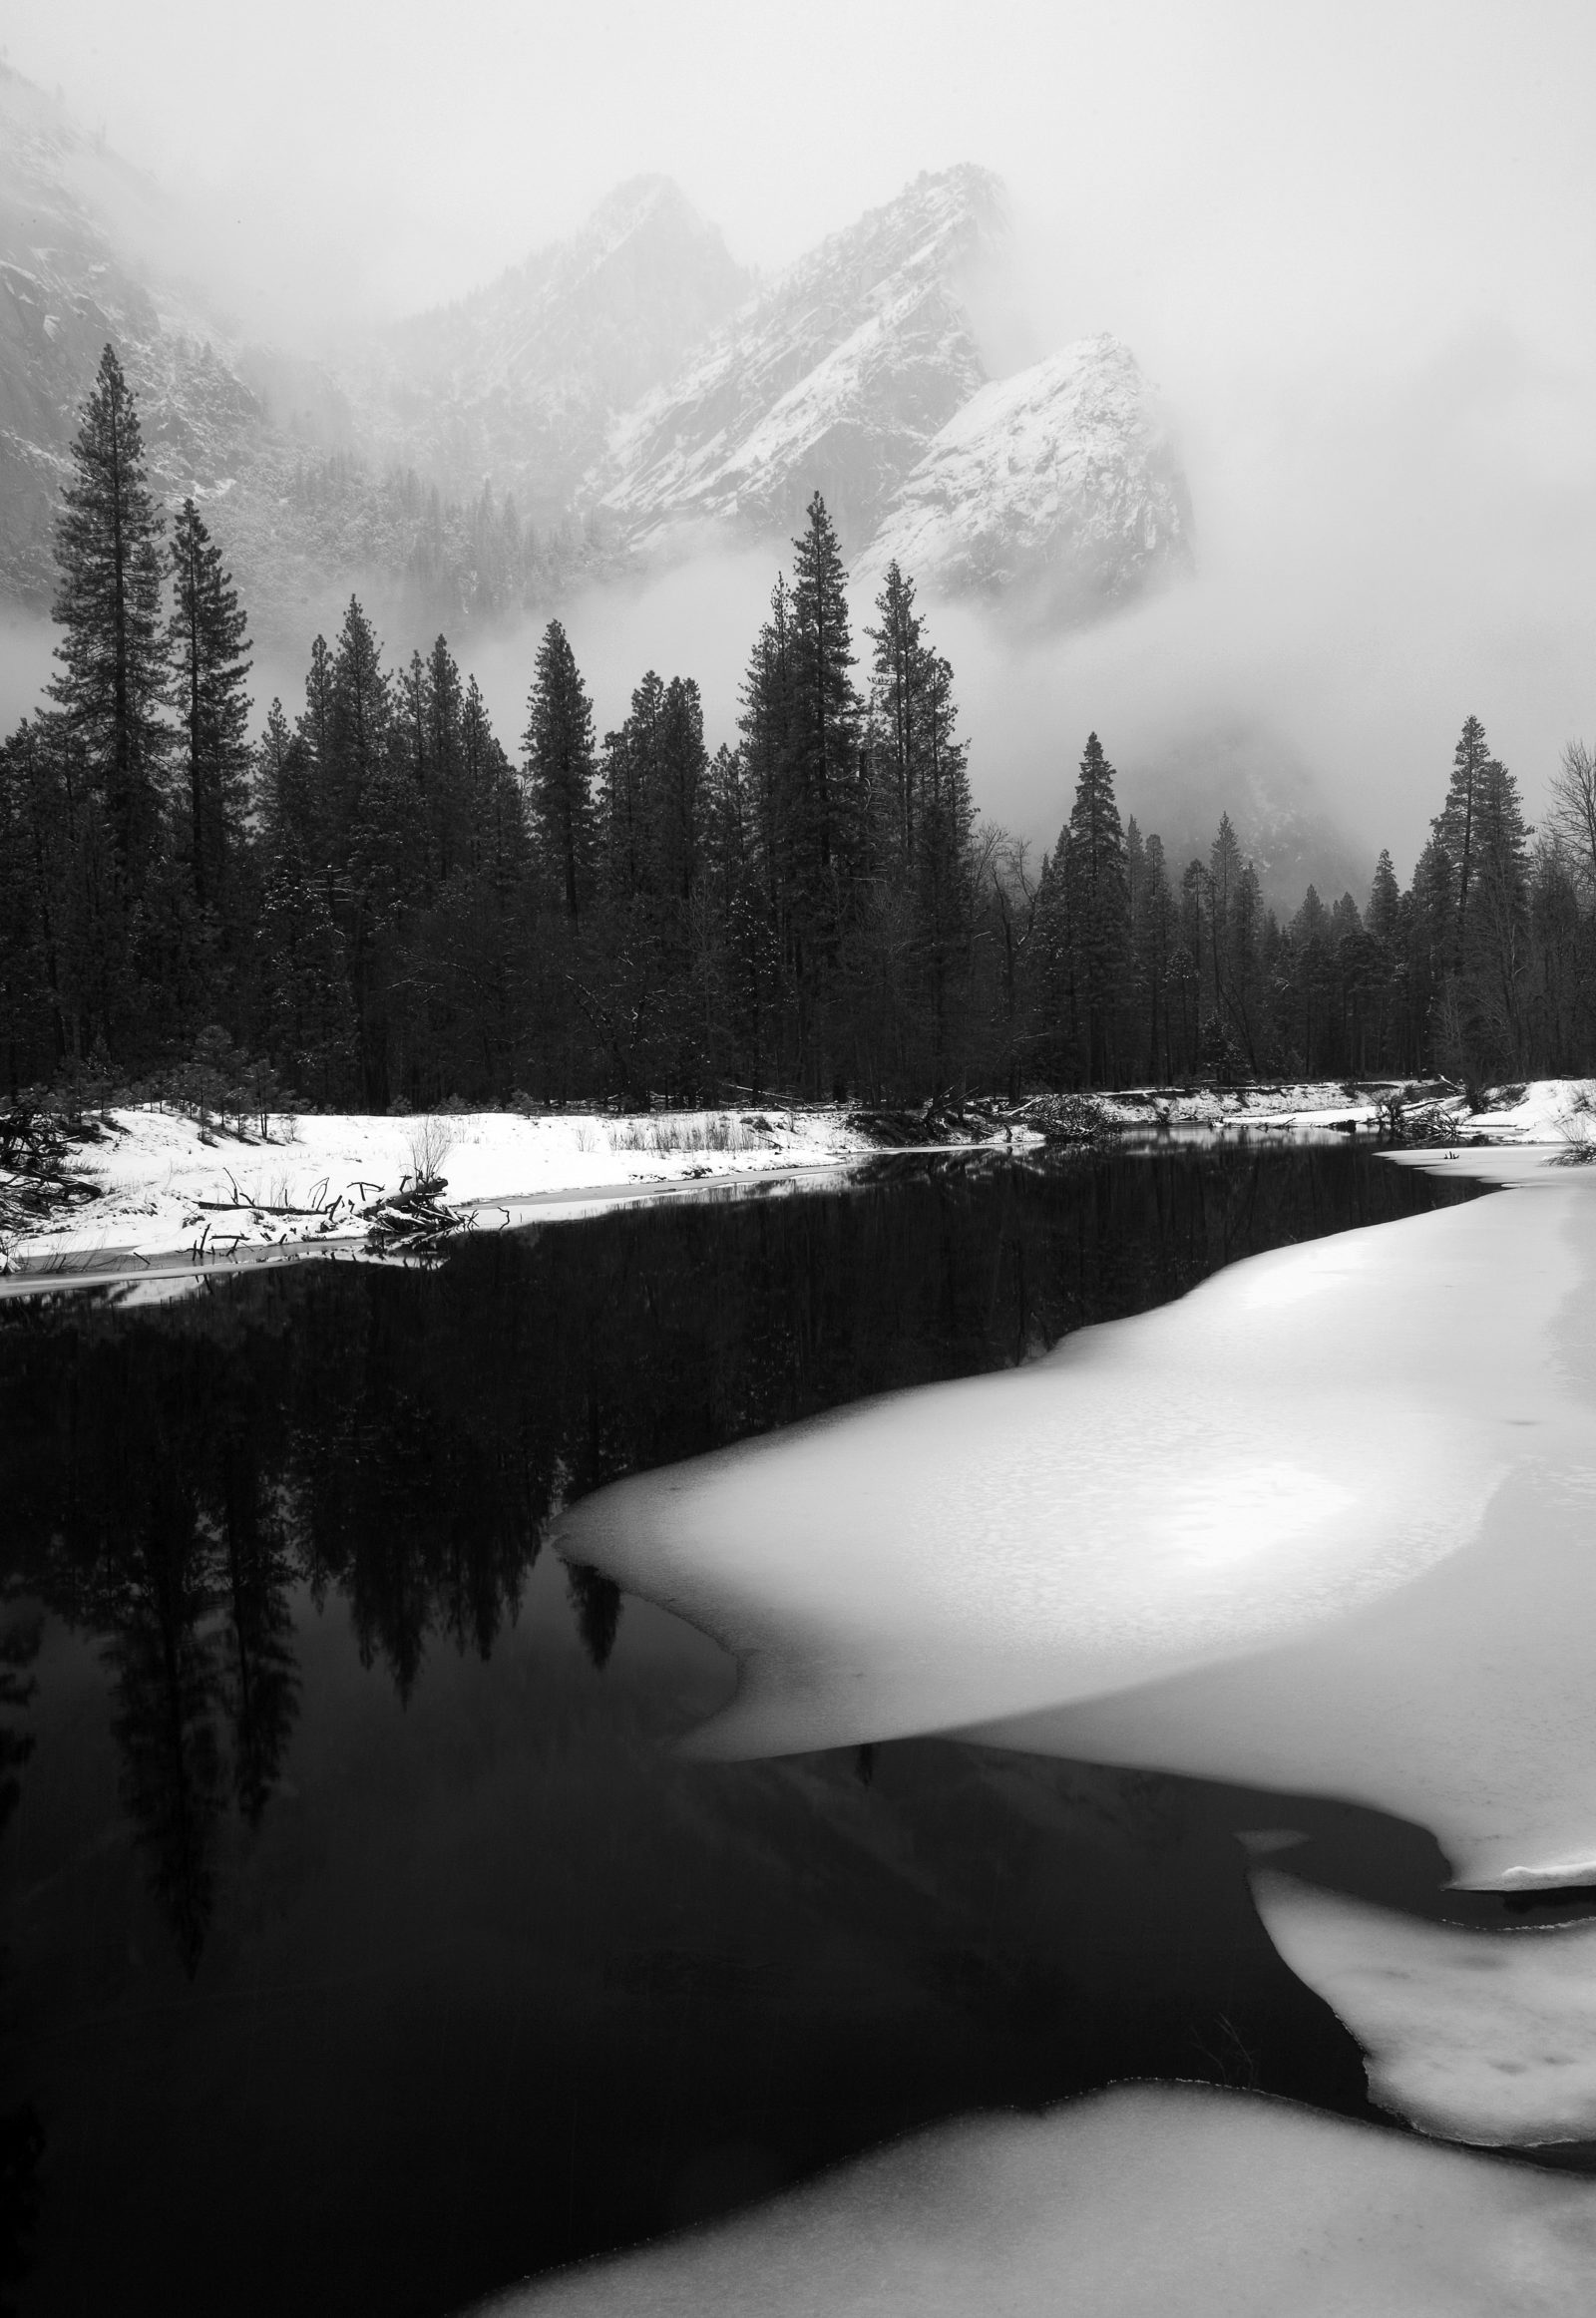 Three Brothers and Merced River in storm